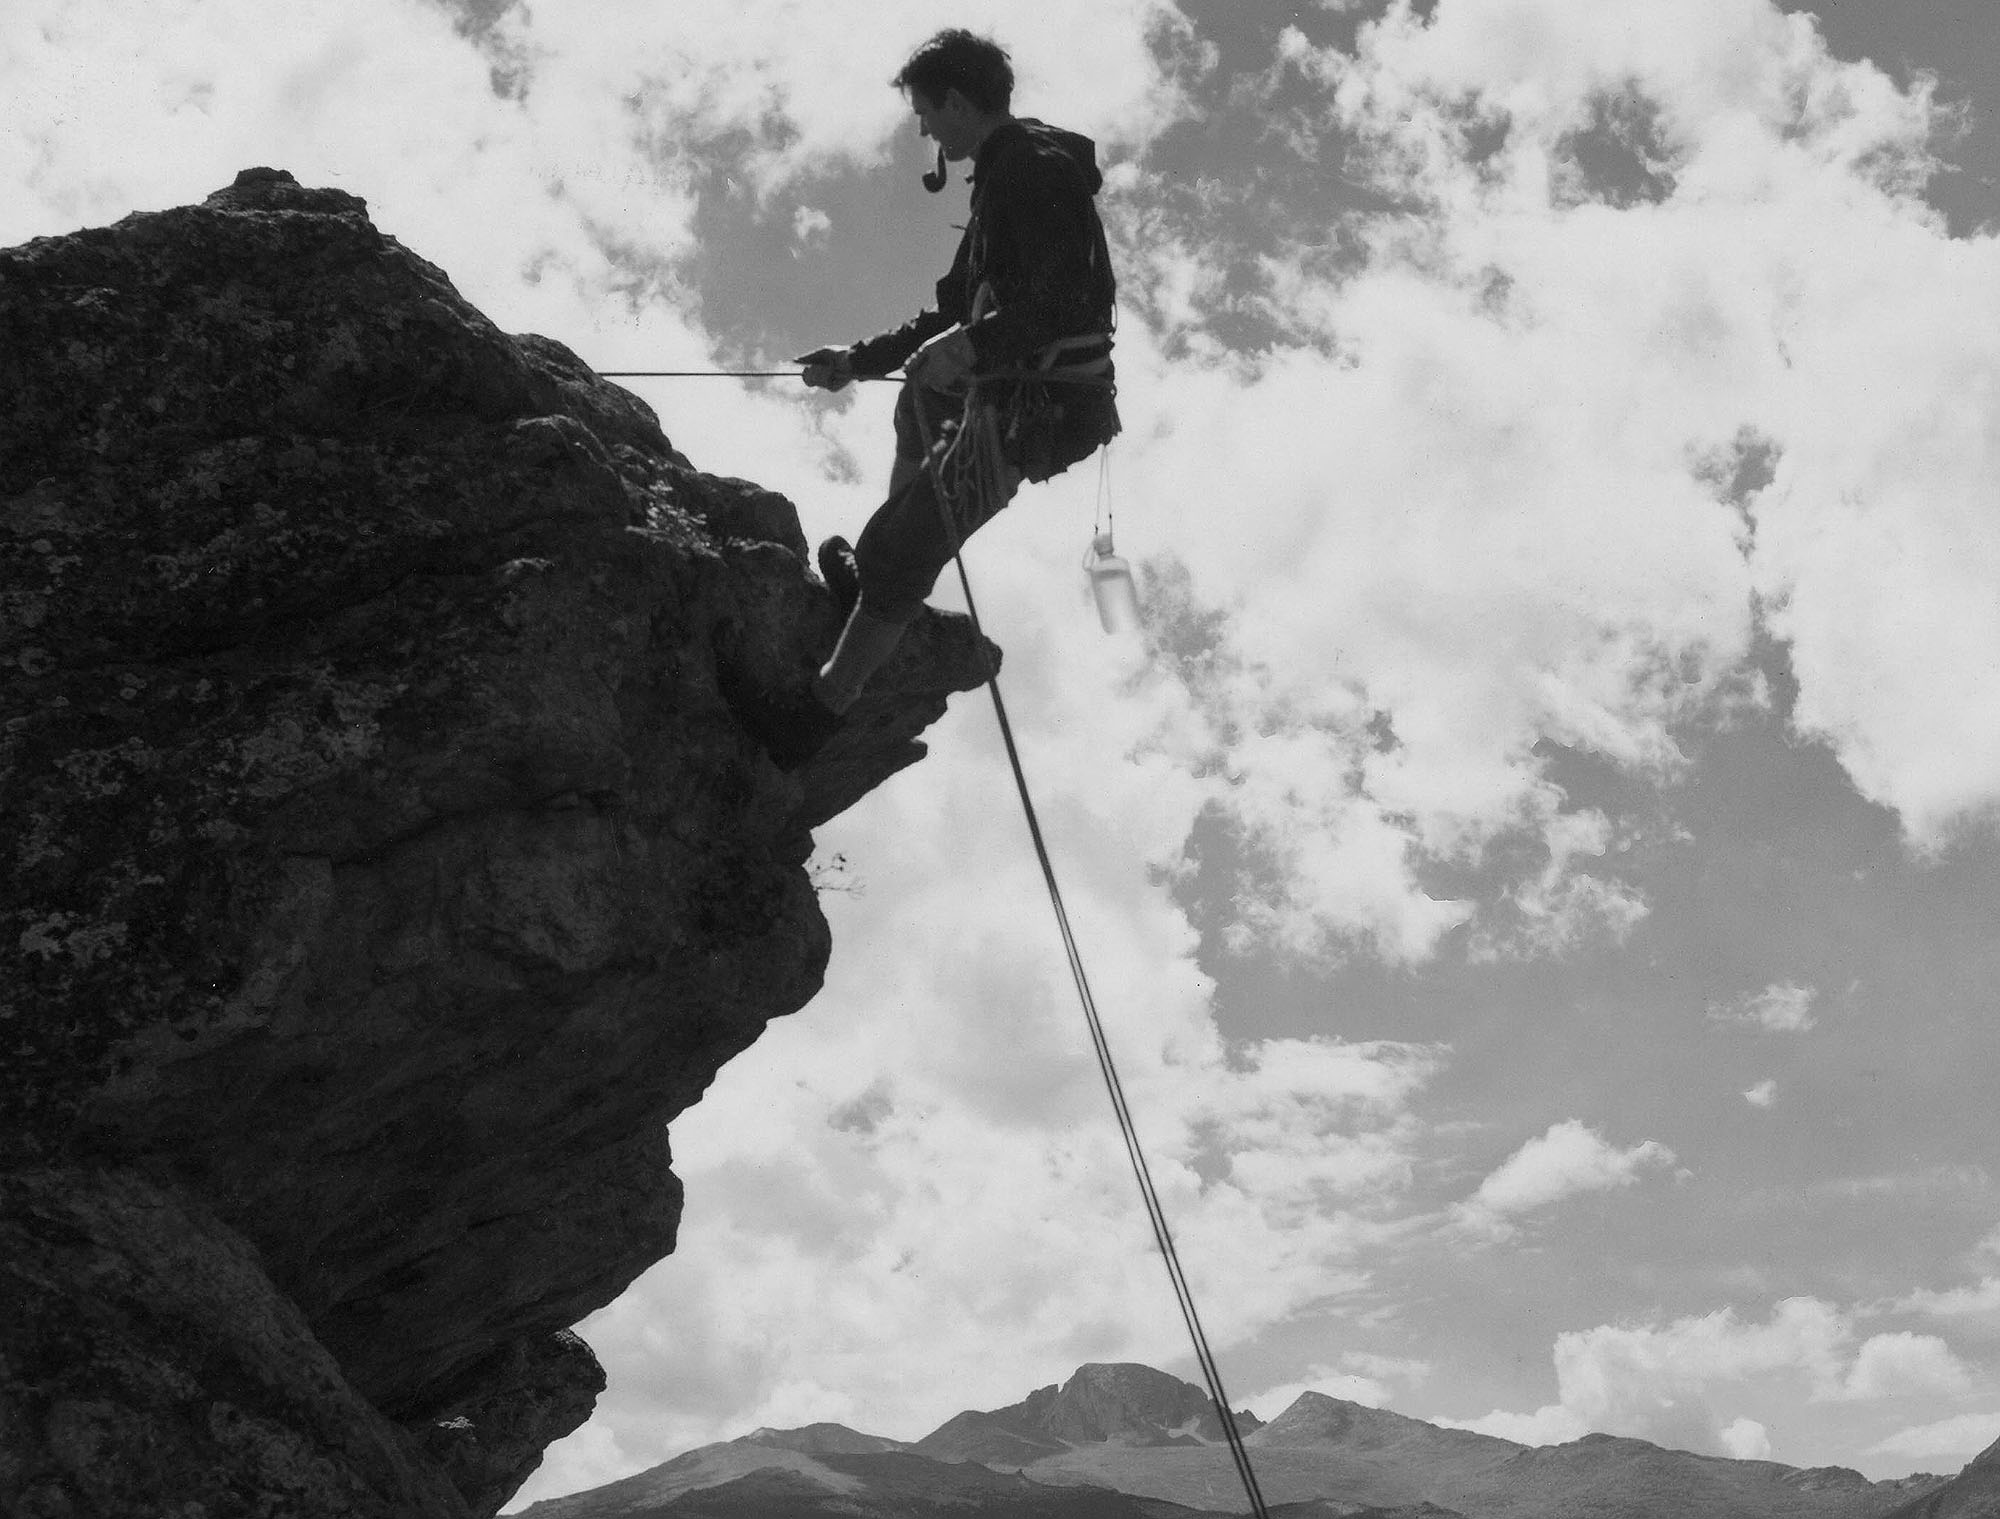 Photo: Rocky Mountain National Park archive climber